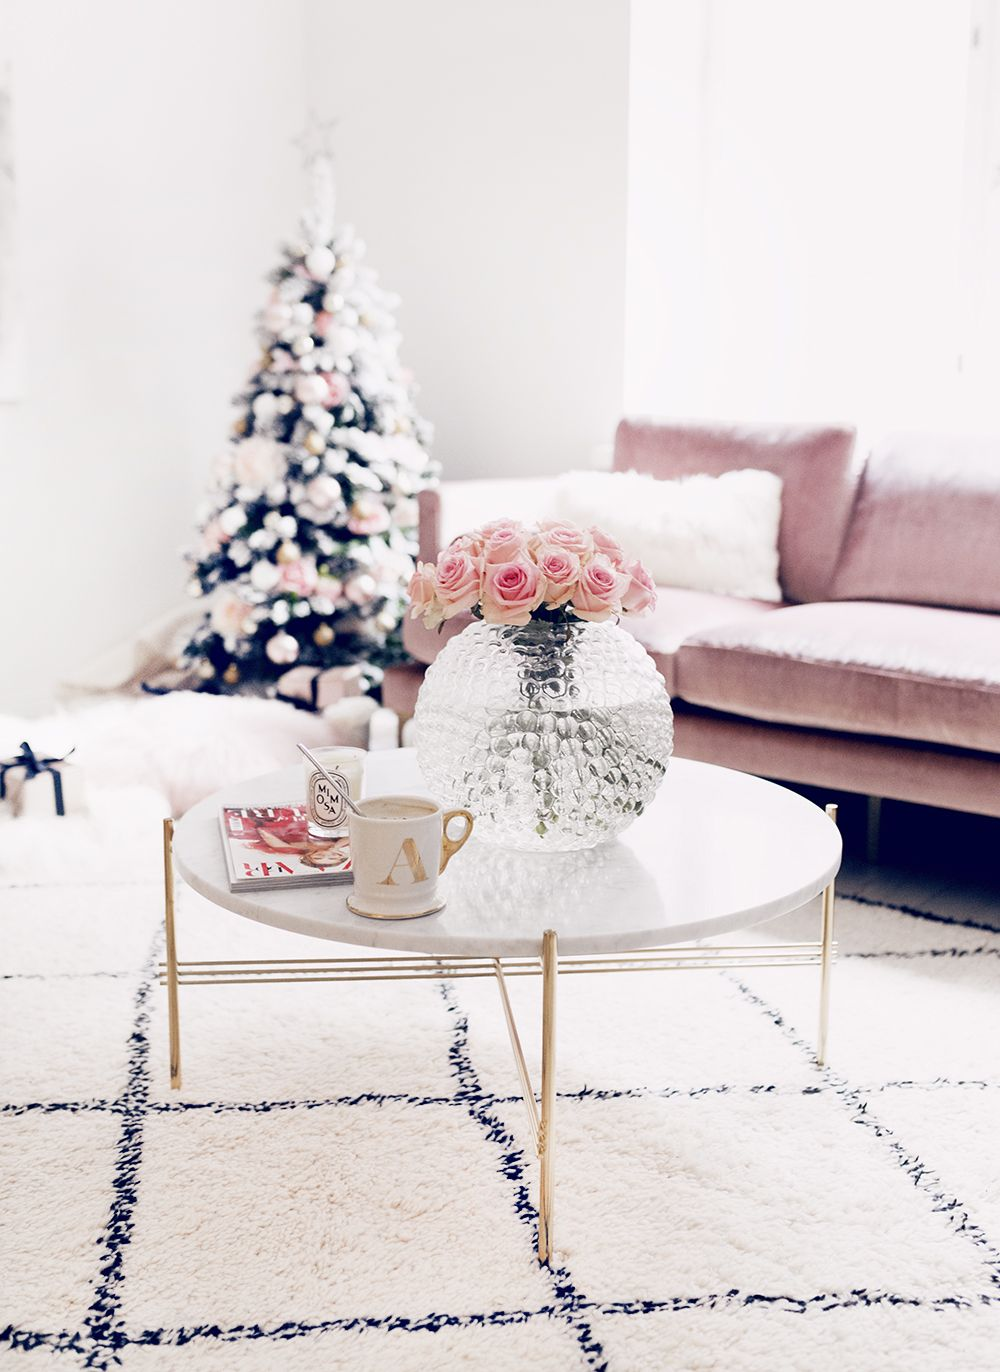 Couchtisch Alexa Alexa Dagmar S Blush Pink Christmas Living Room Home Decor